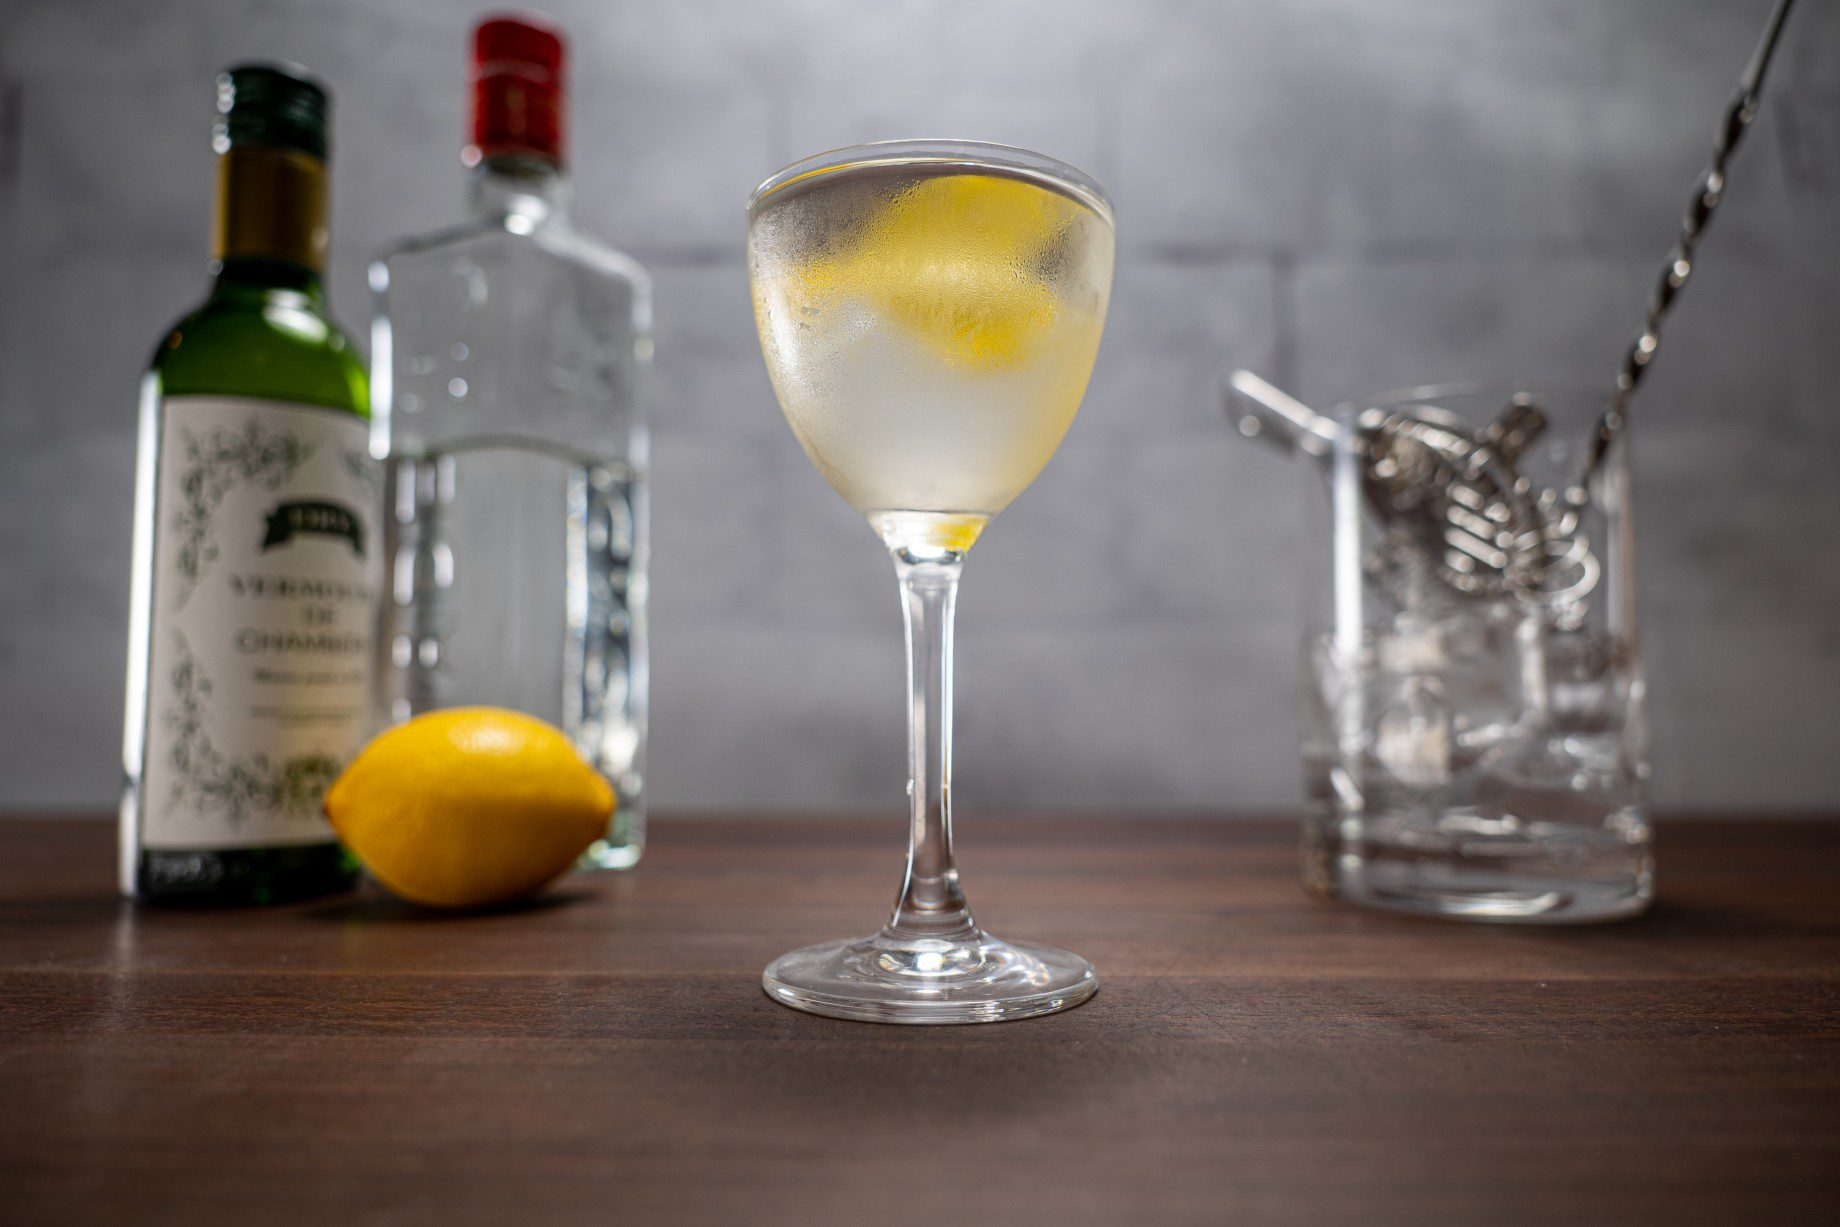 Alton Brown martini garnished with a twist of lemon and flanked by gin, vermouth, a lemon and a cocktail mixing glass.